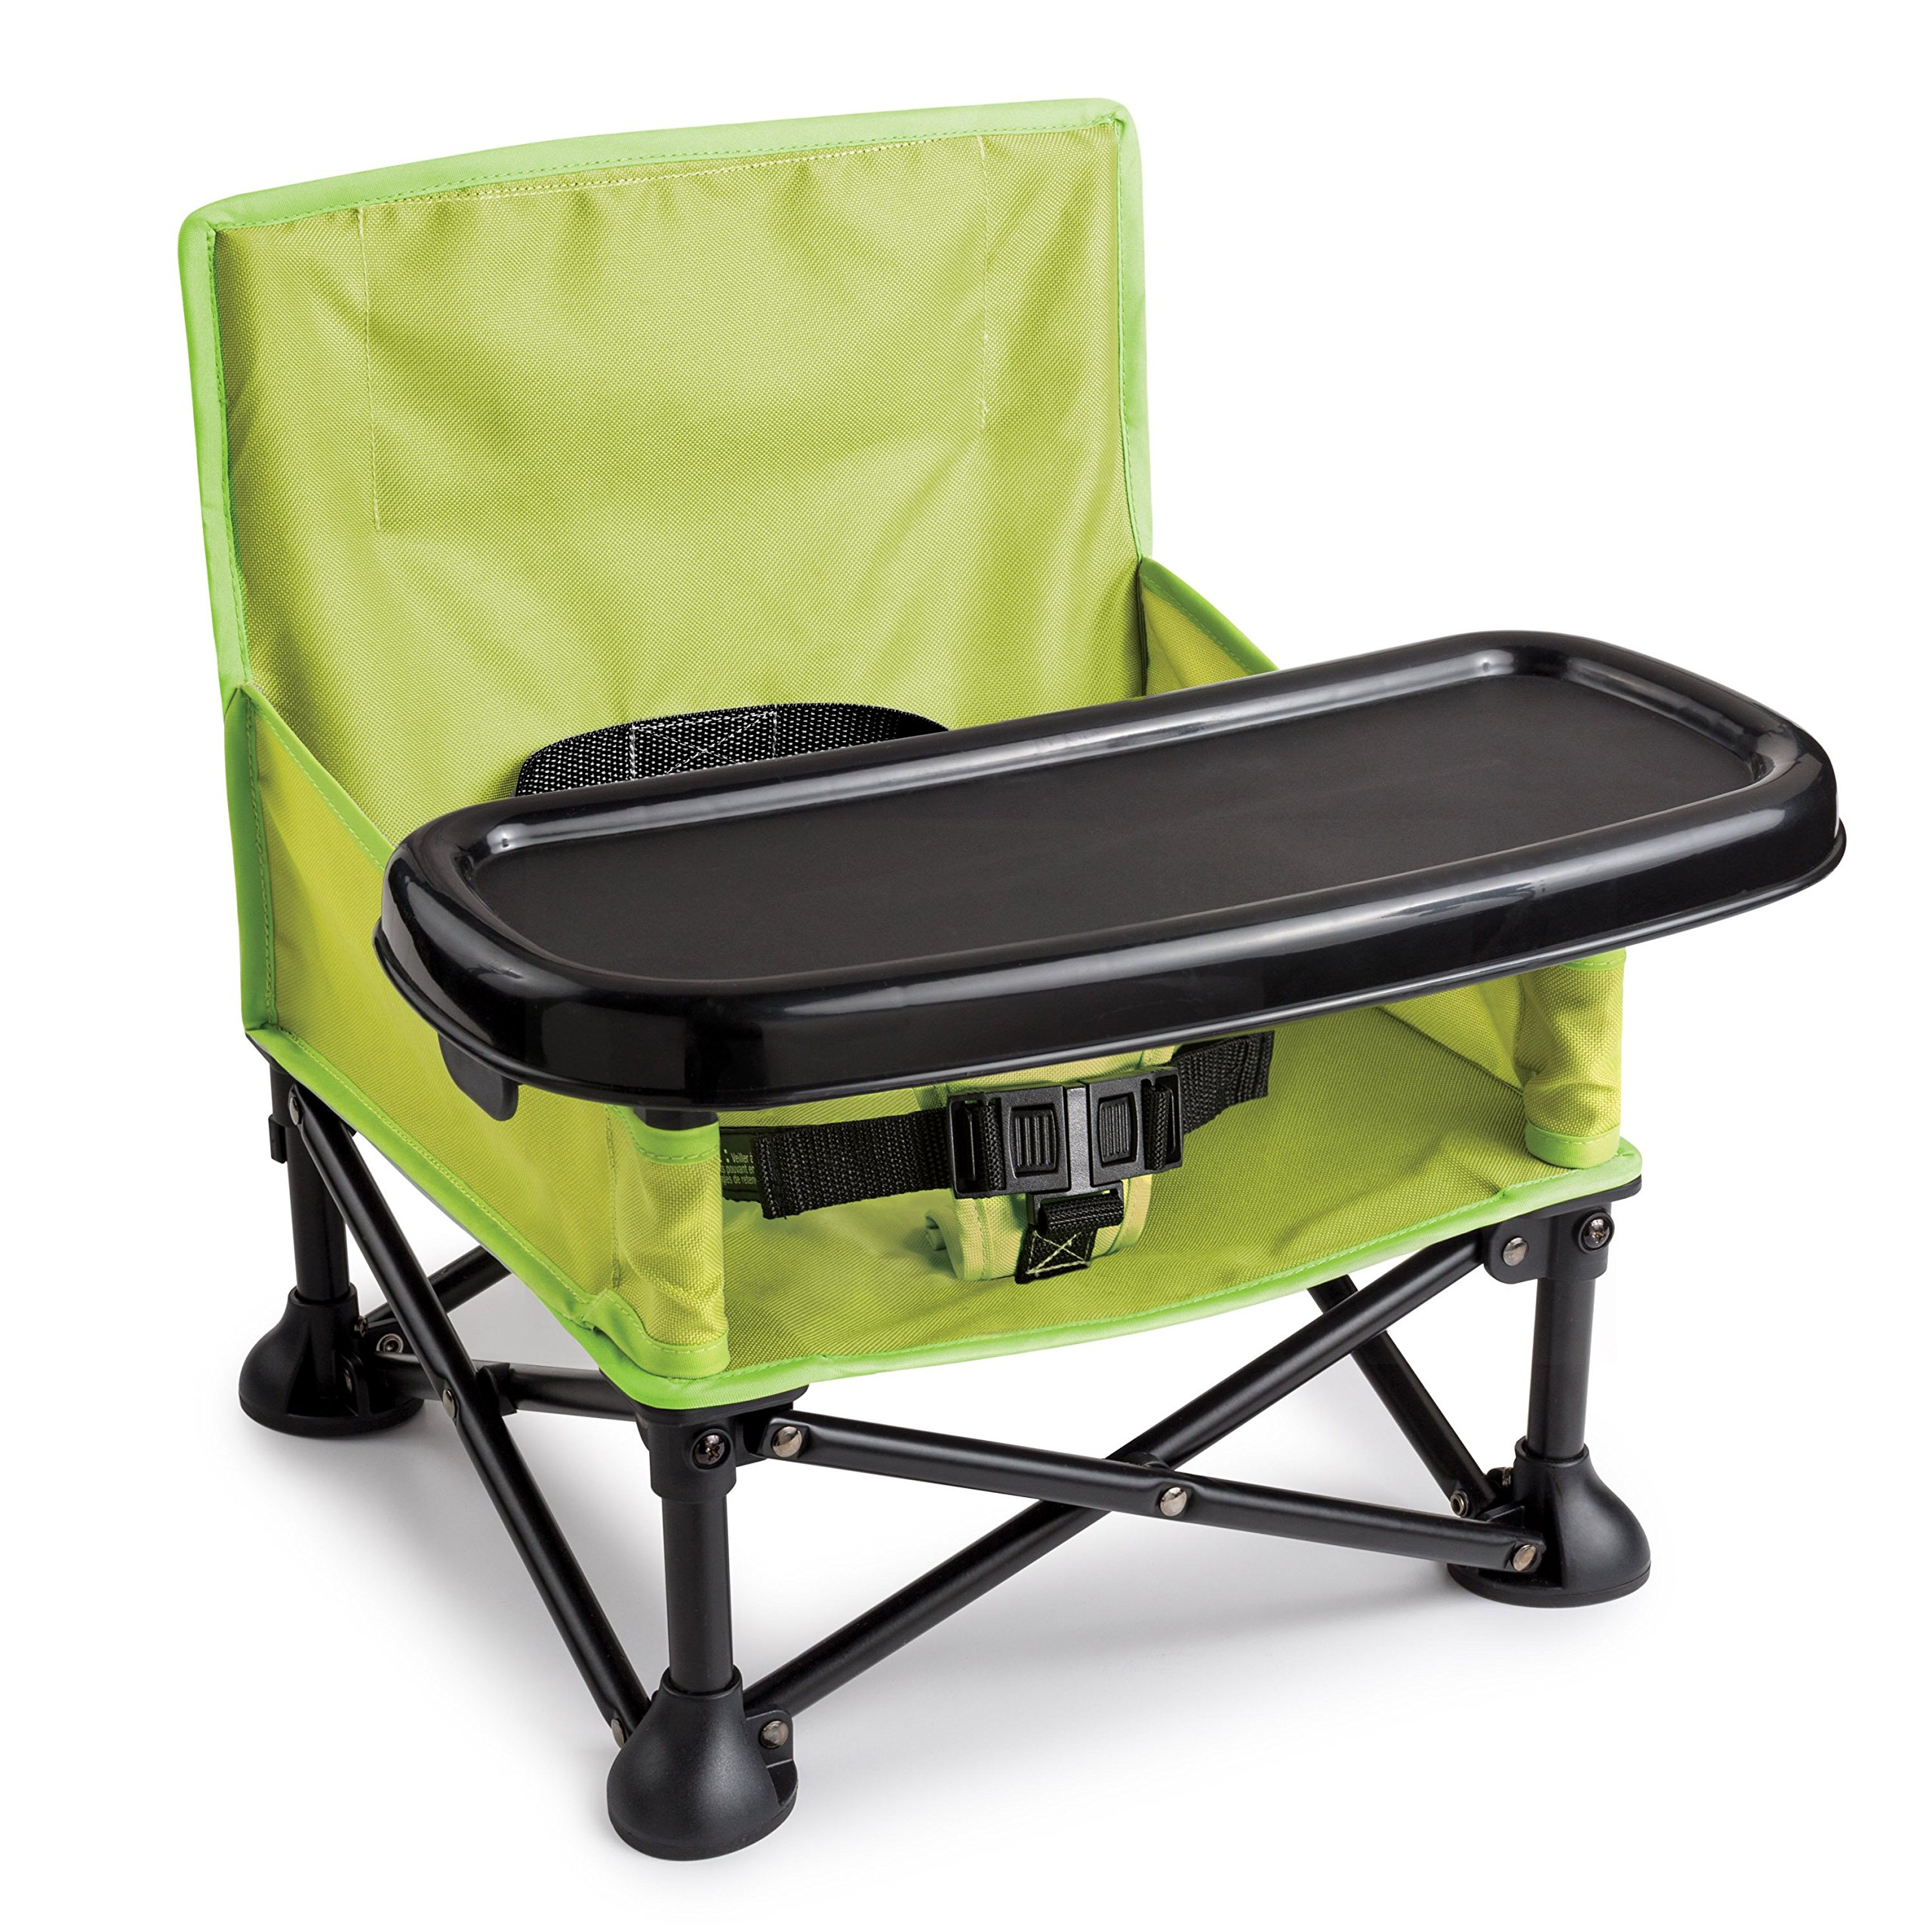 Baby Chair New Camping Booster Portable Infant Seat Baby Toddler